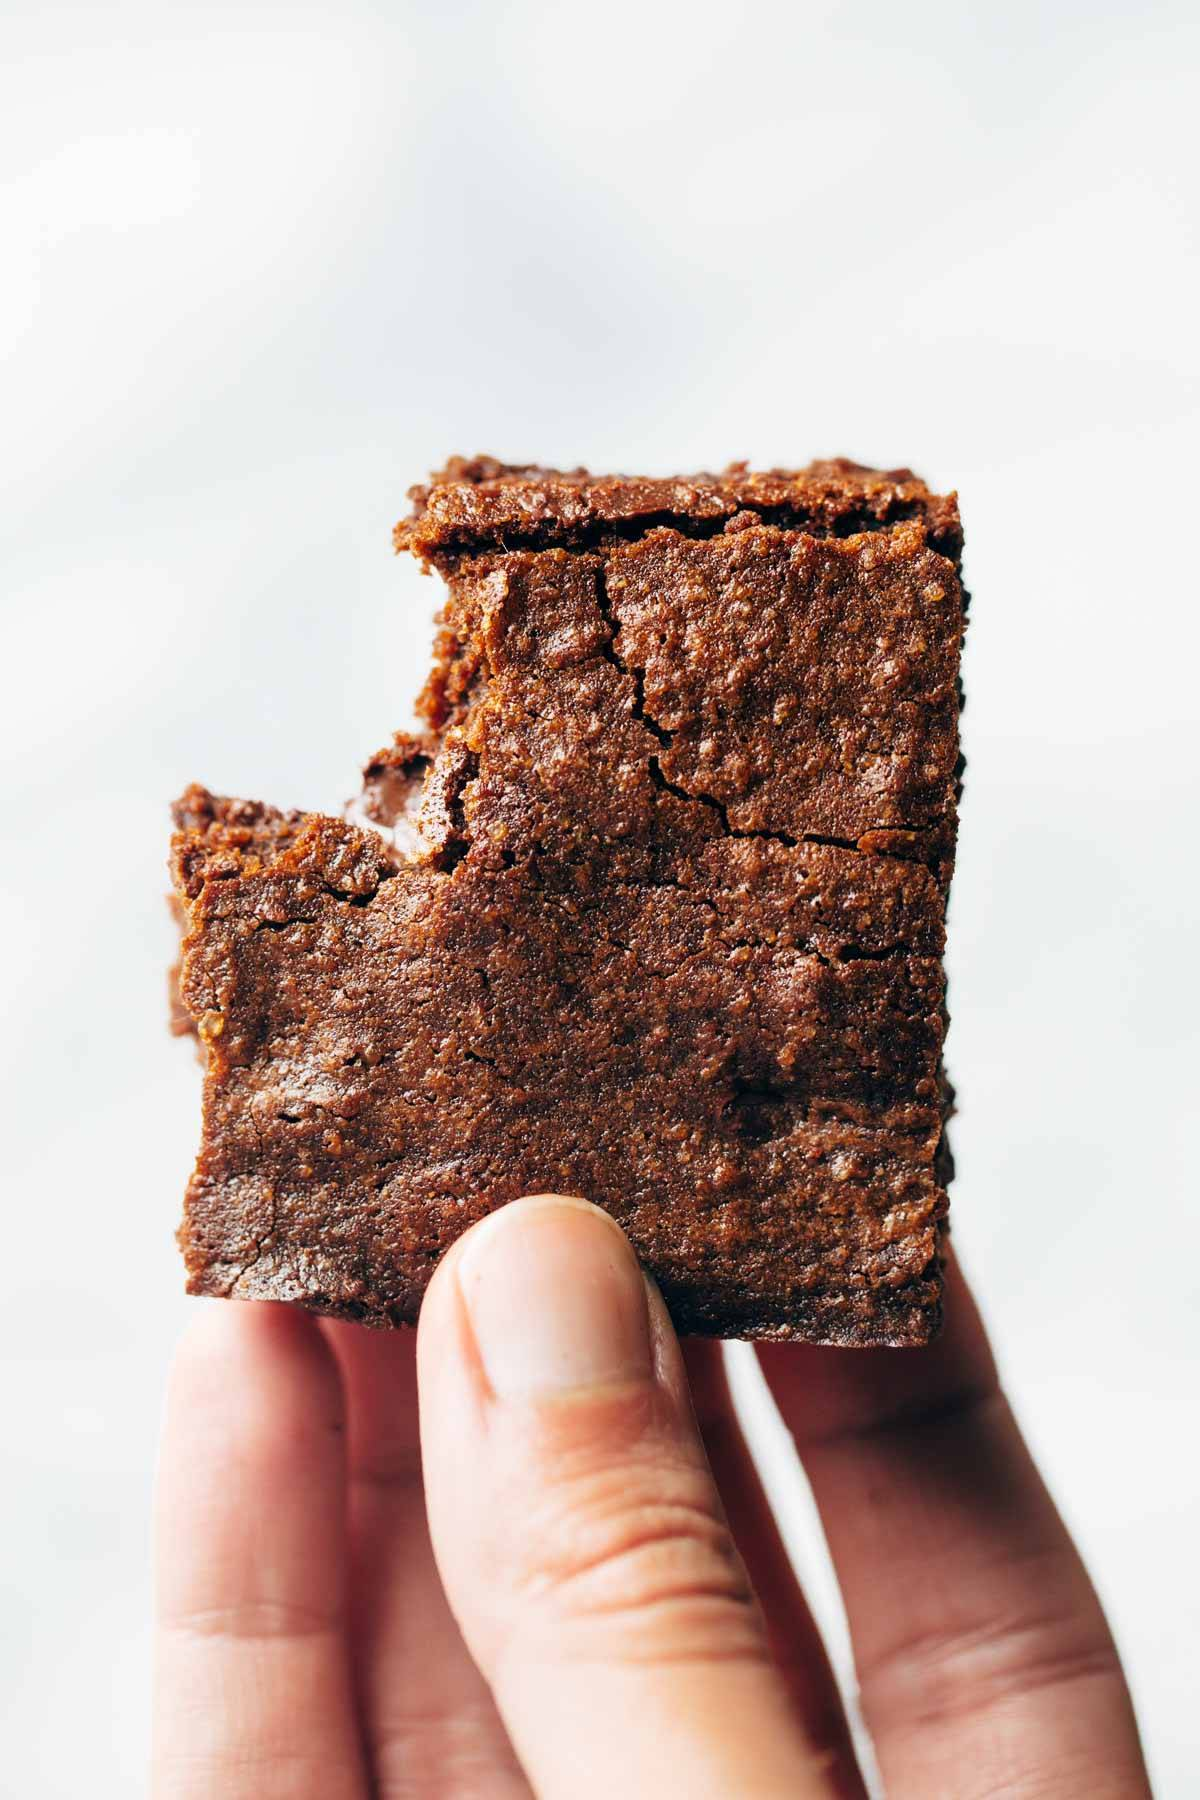 Espresso brownie with a bite in it.